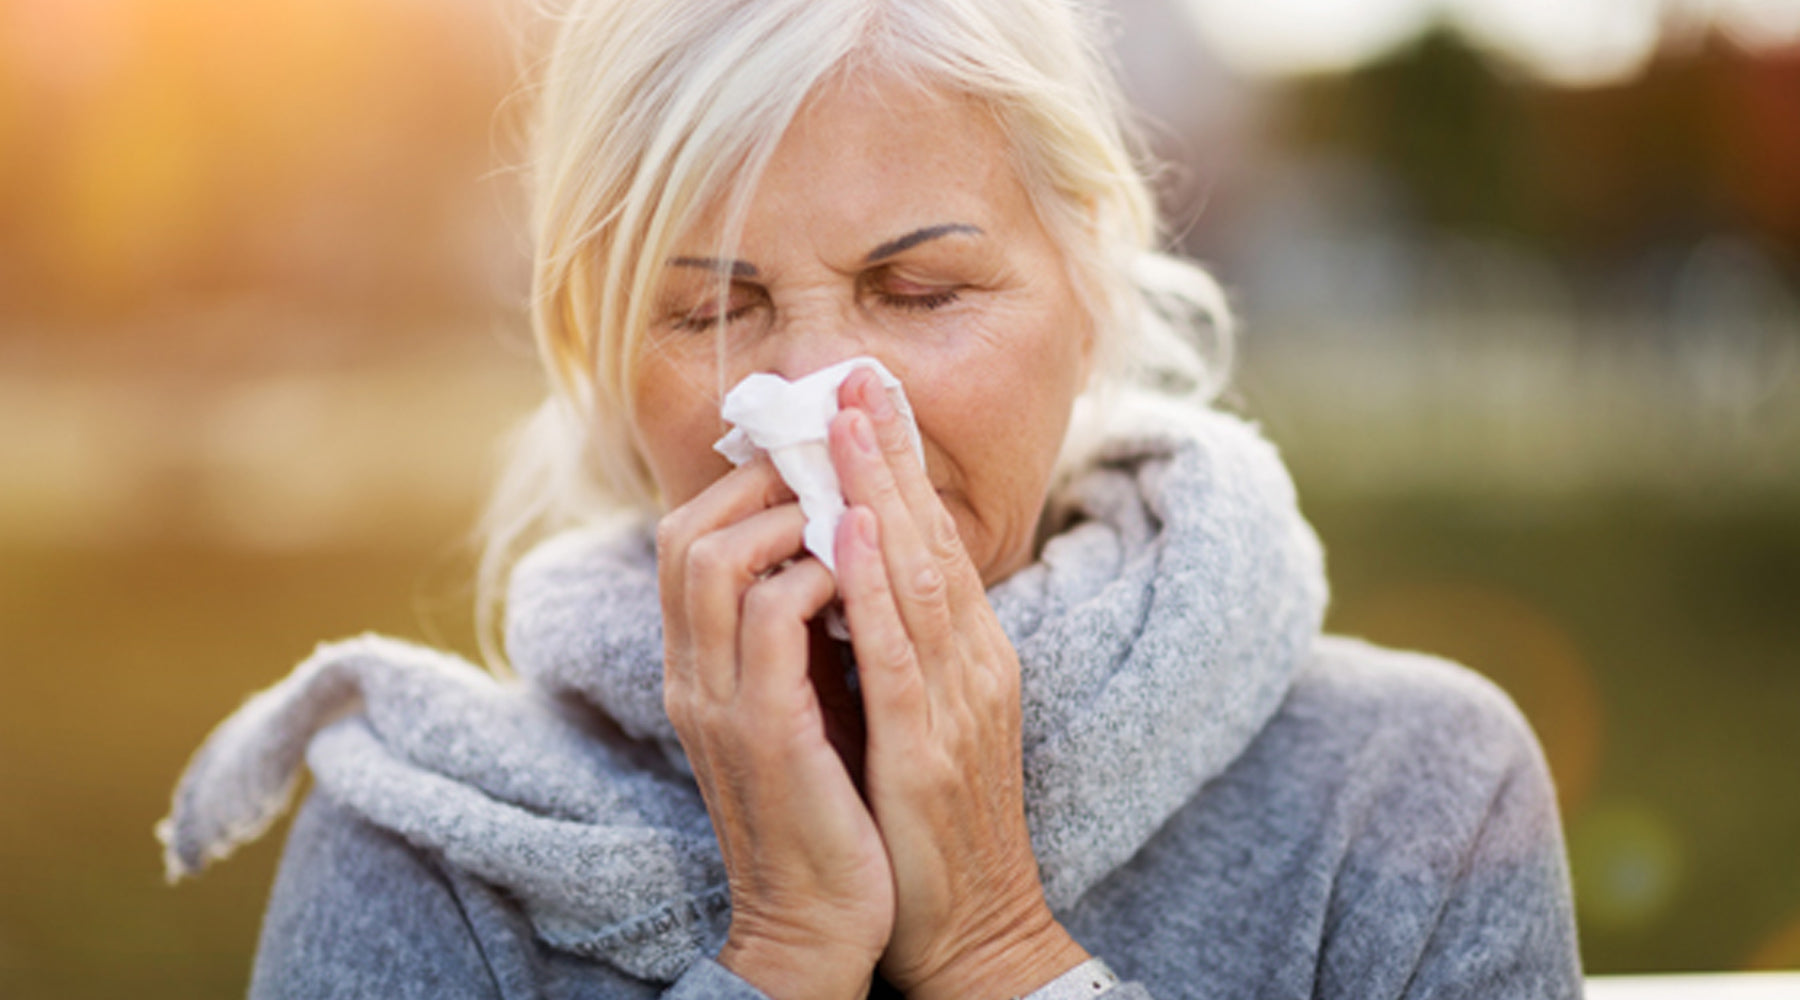 Take Wellness Formula for an Easy Cold & Flu Season